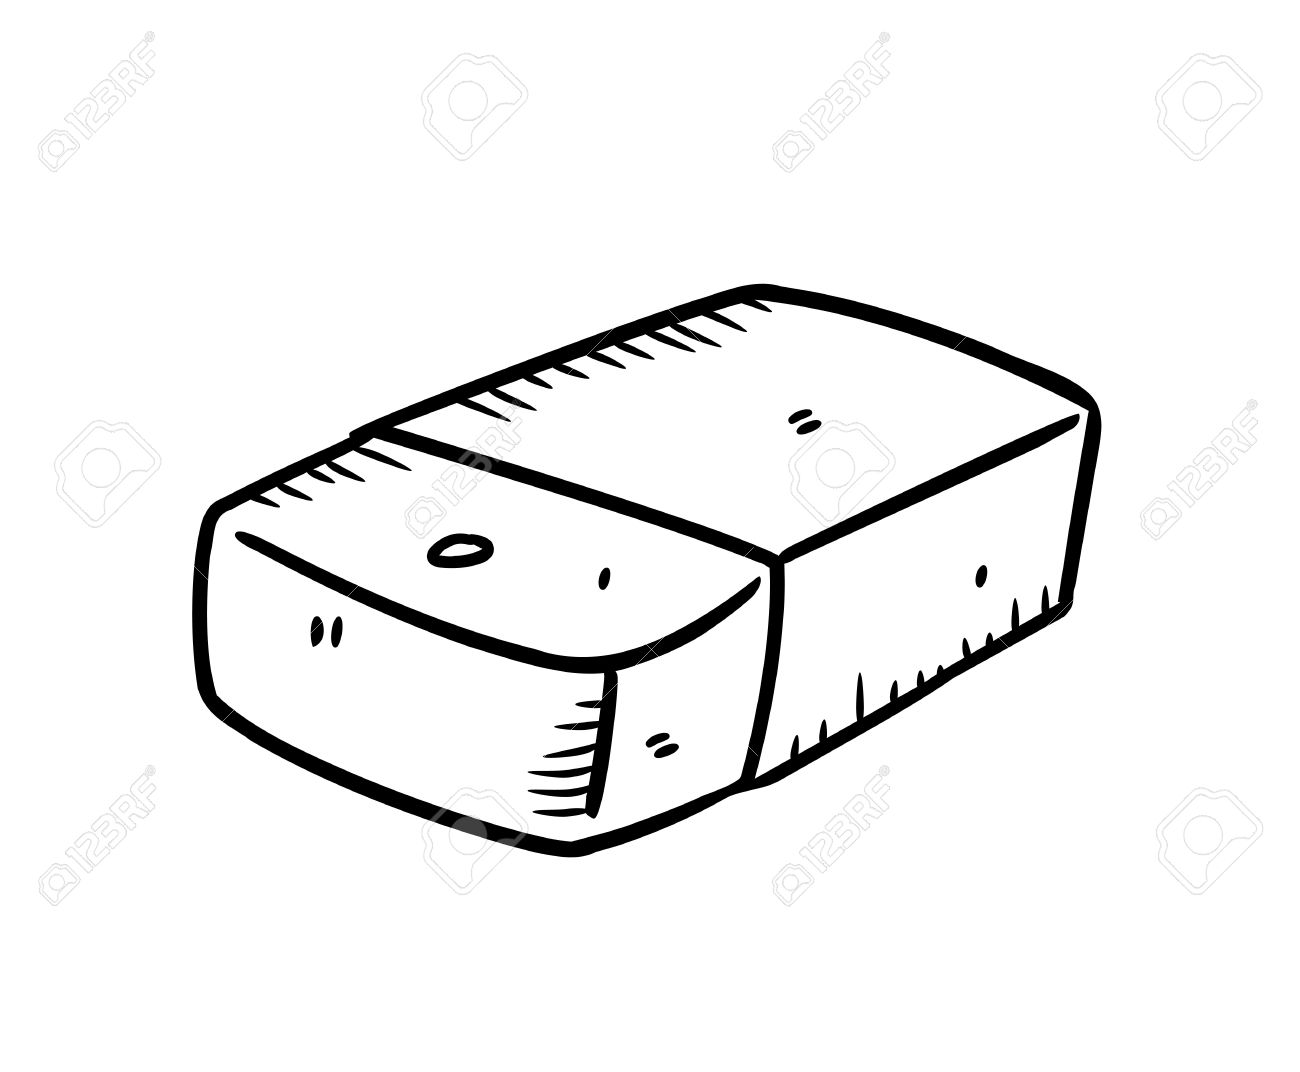 eraser clipart black and white 2 » clipart station